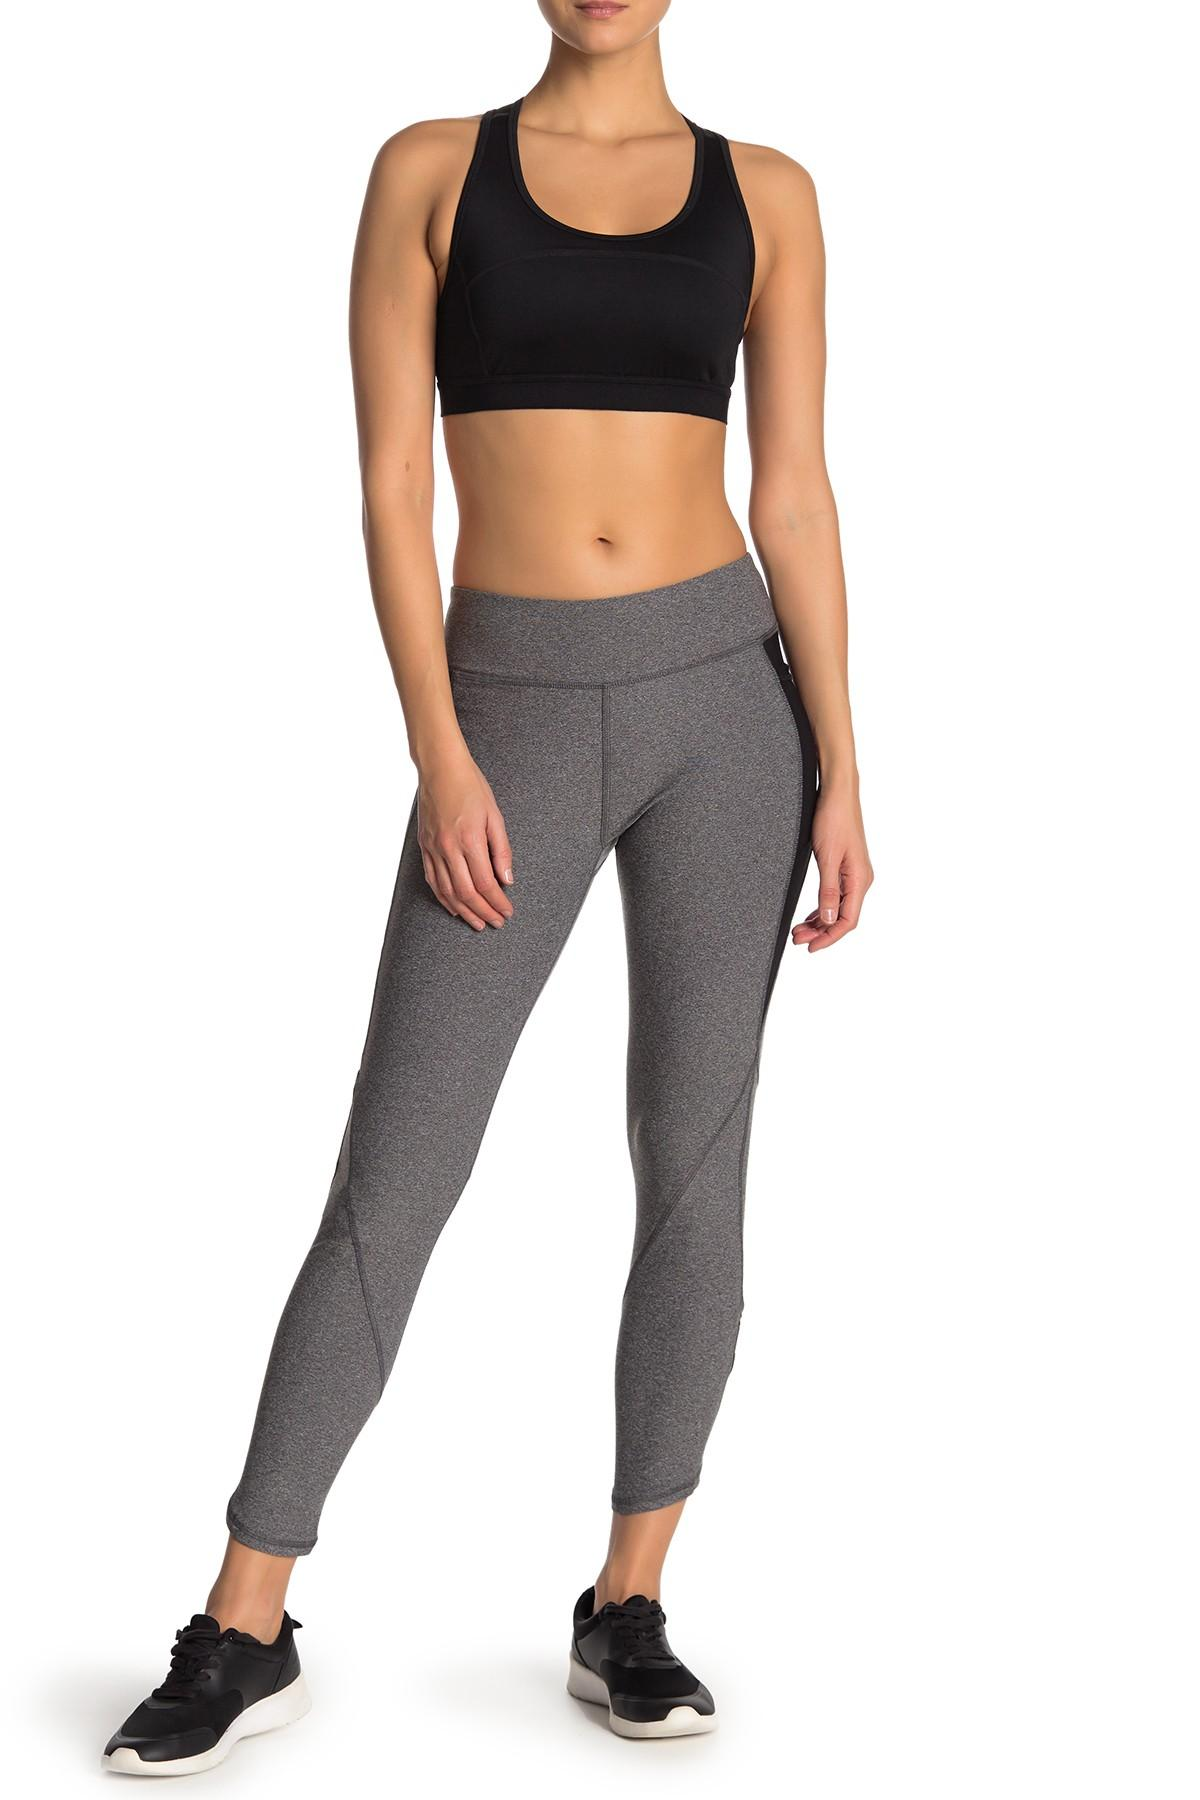 11adf896434ca Lyst - X By Gottex Mesh Panel Zipper Trim Leggings in Gray - Save 8%